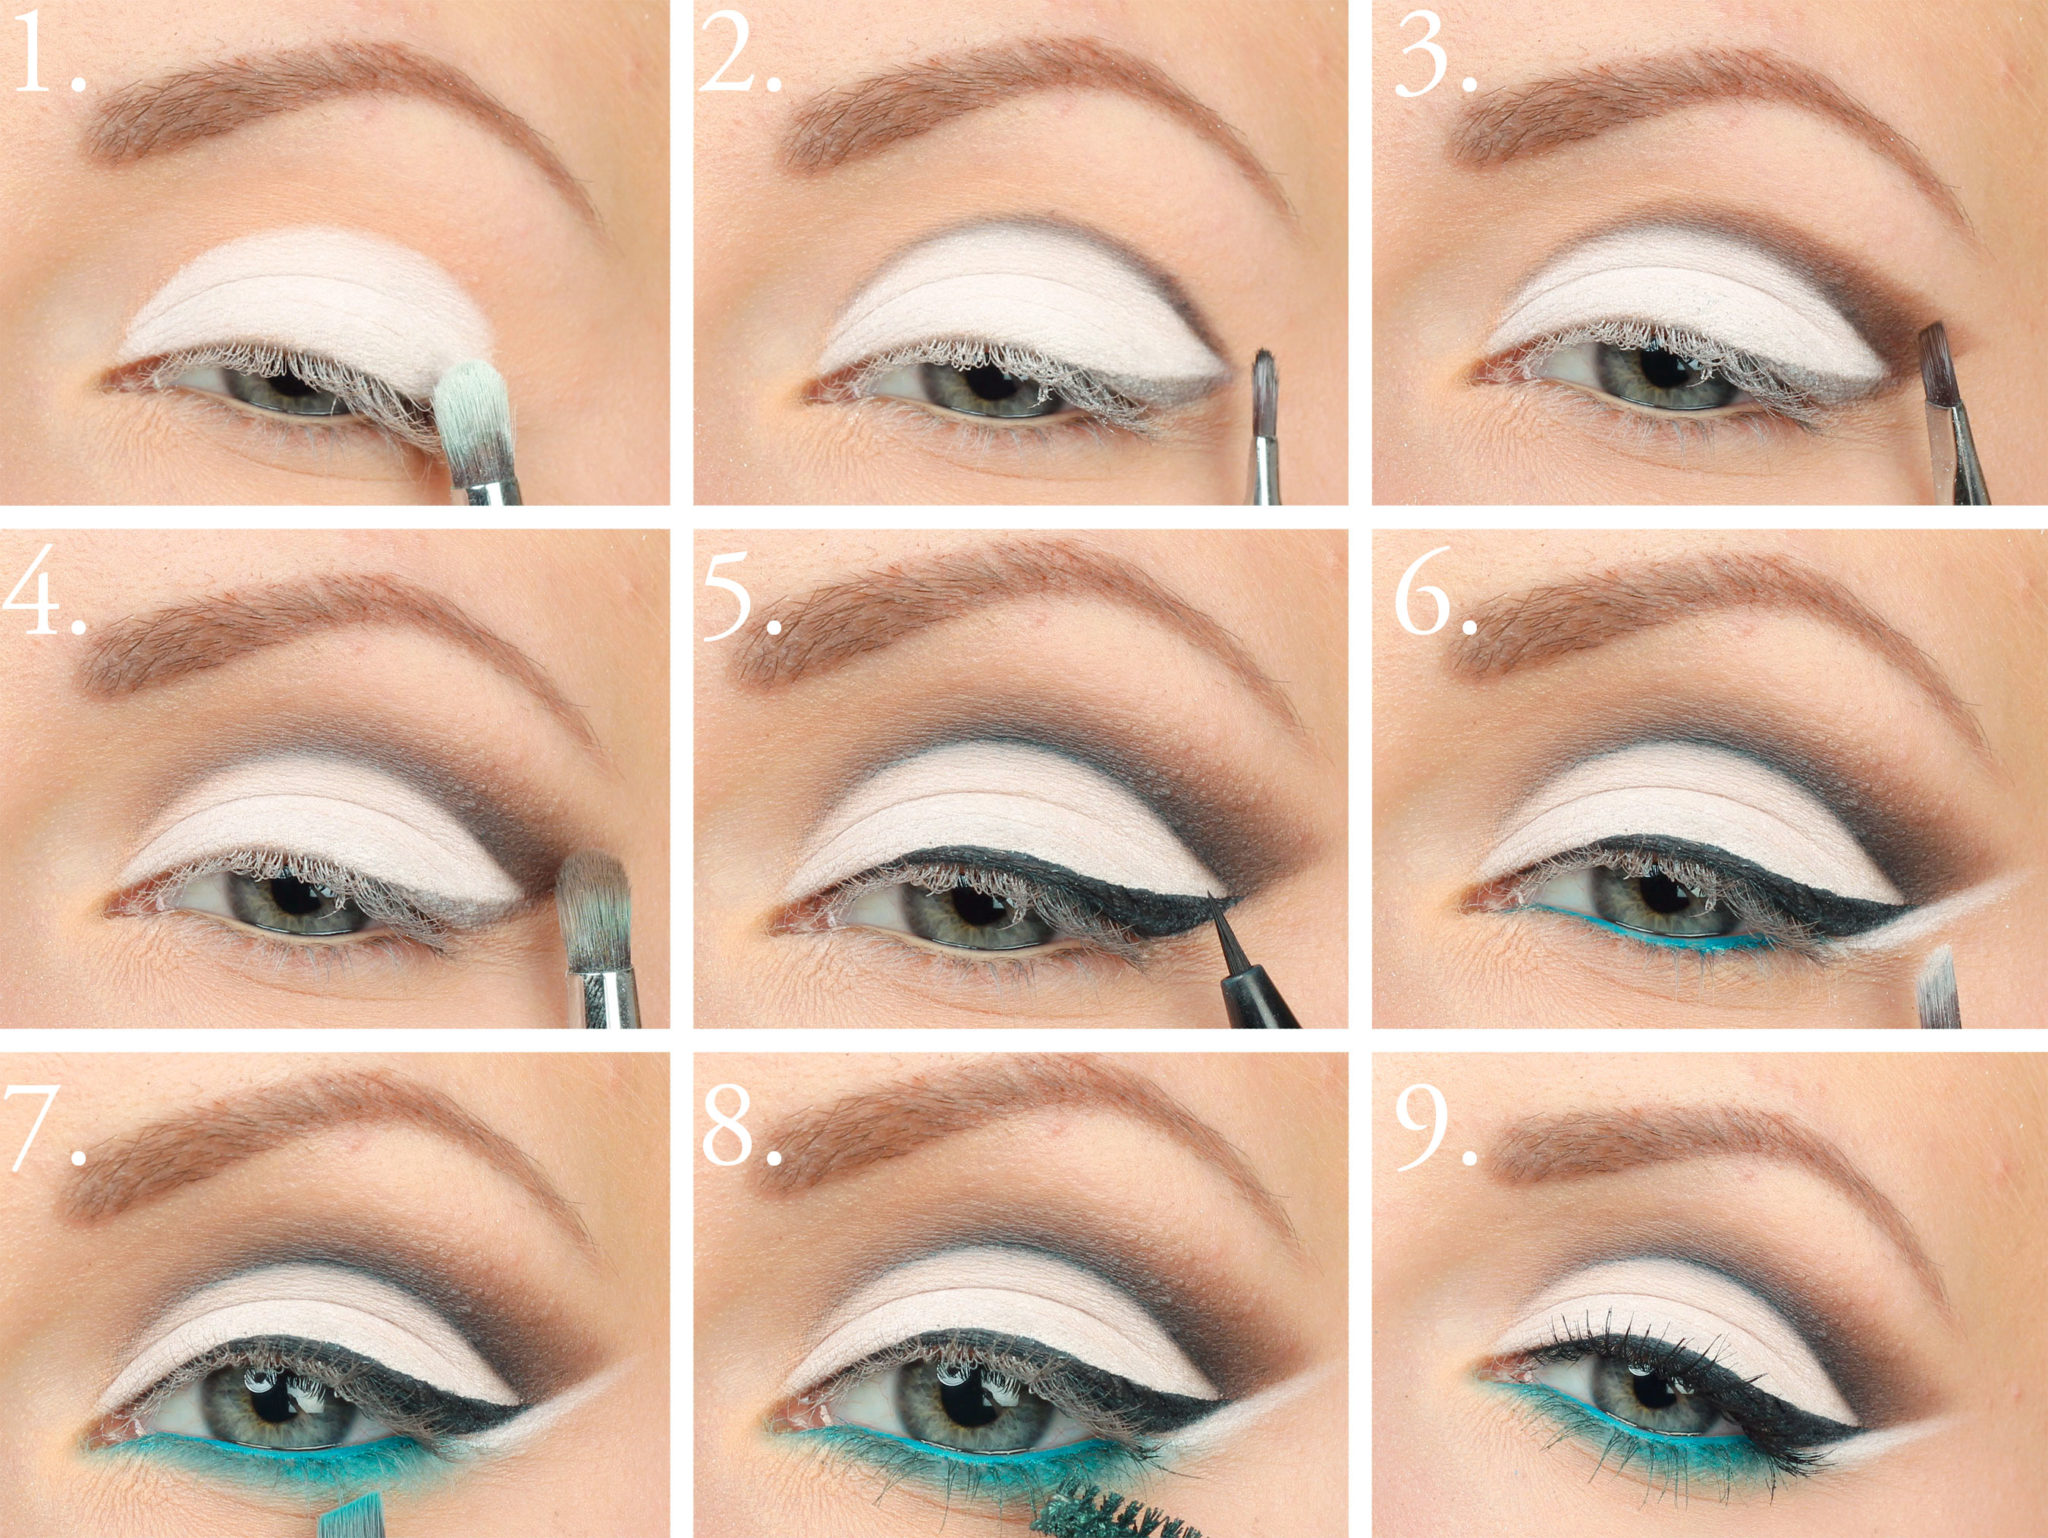 15 most easy to apply makeup tips for hooded eyes makeup tip 14 apply white eye shadow baditri Image collections